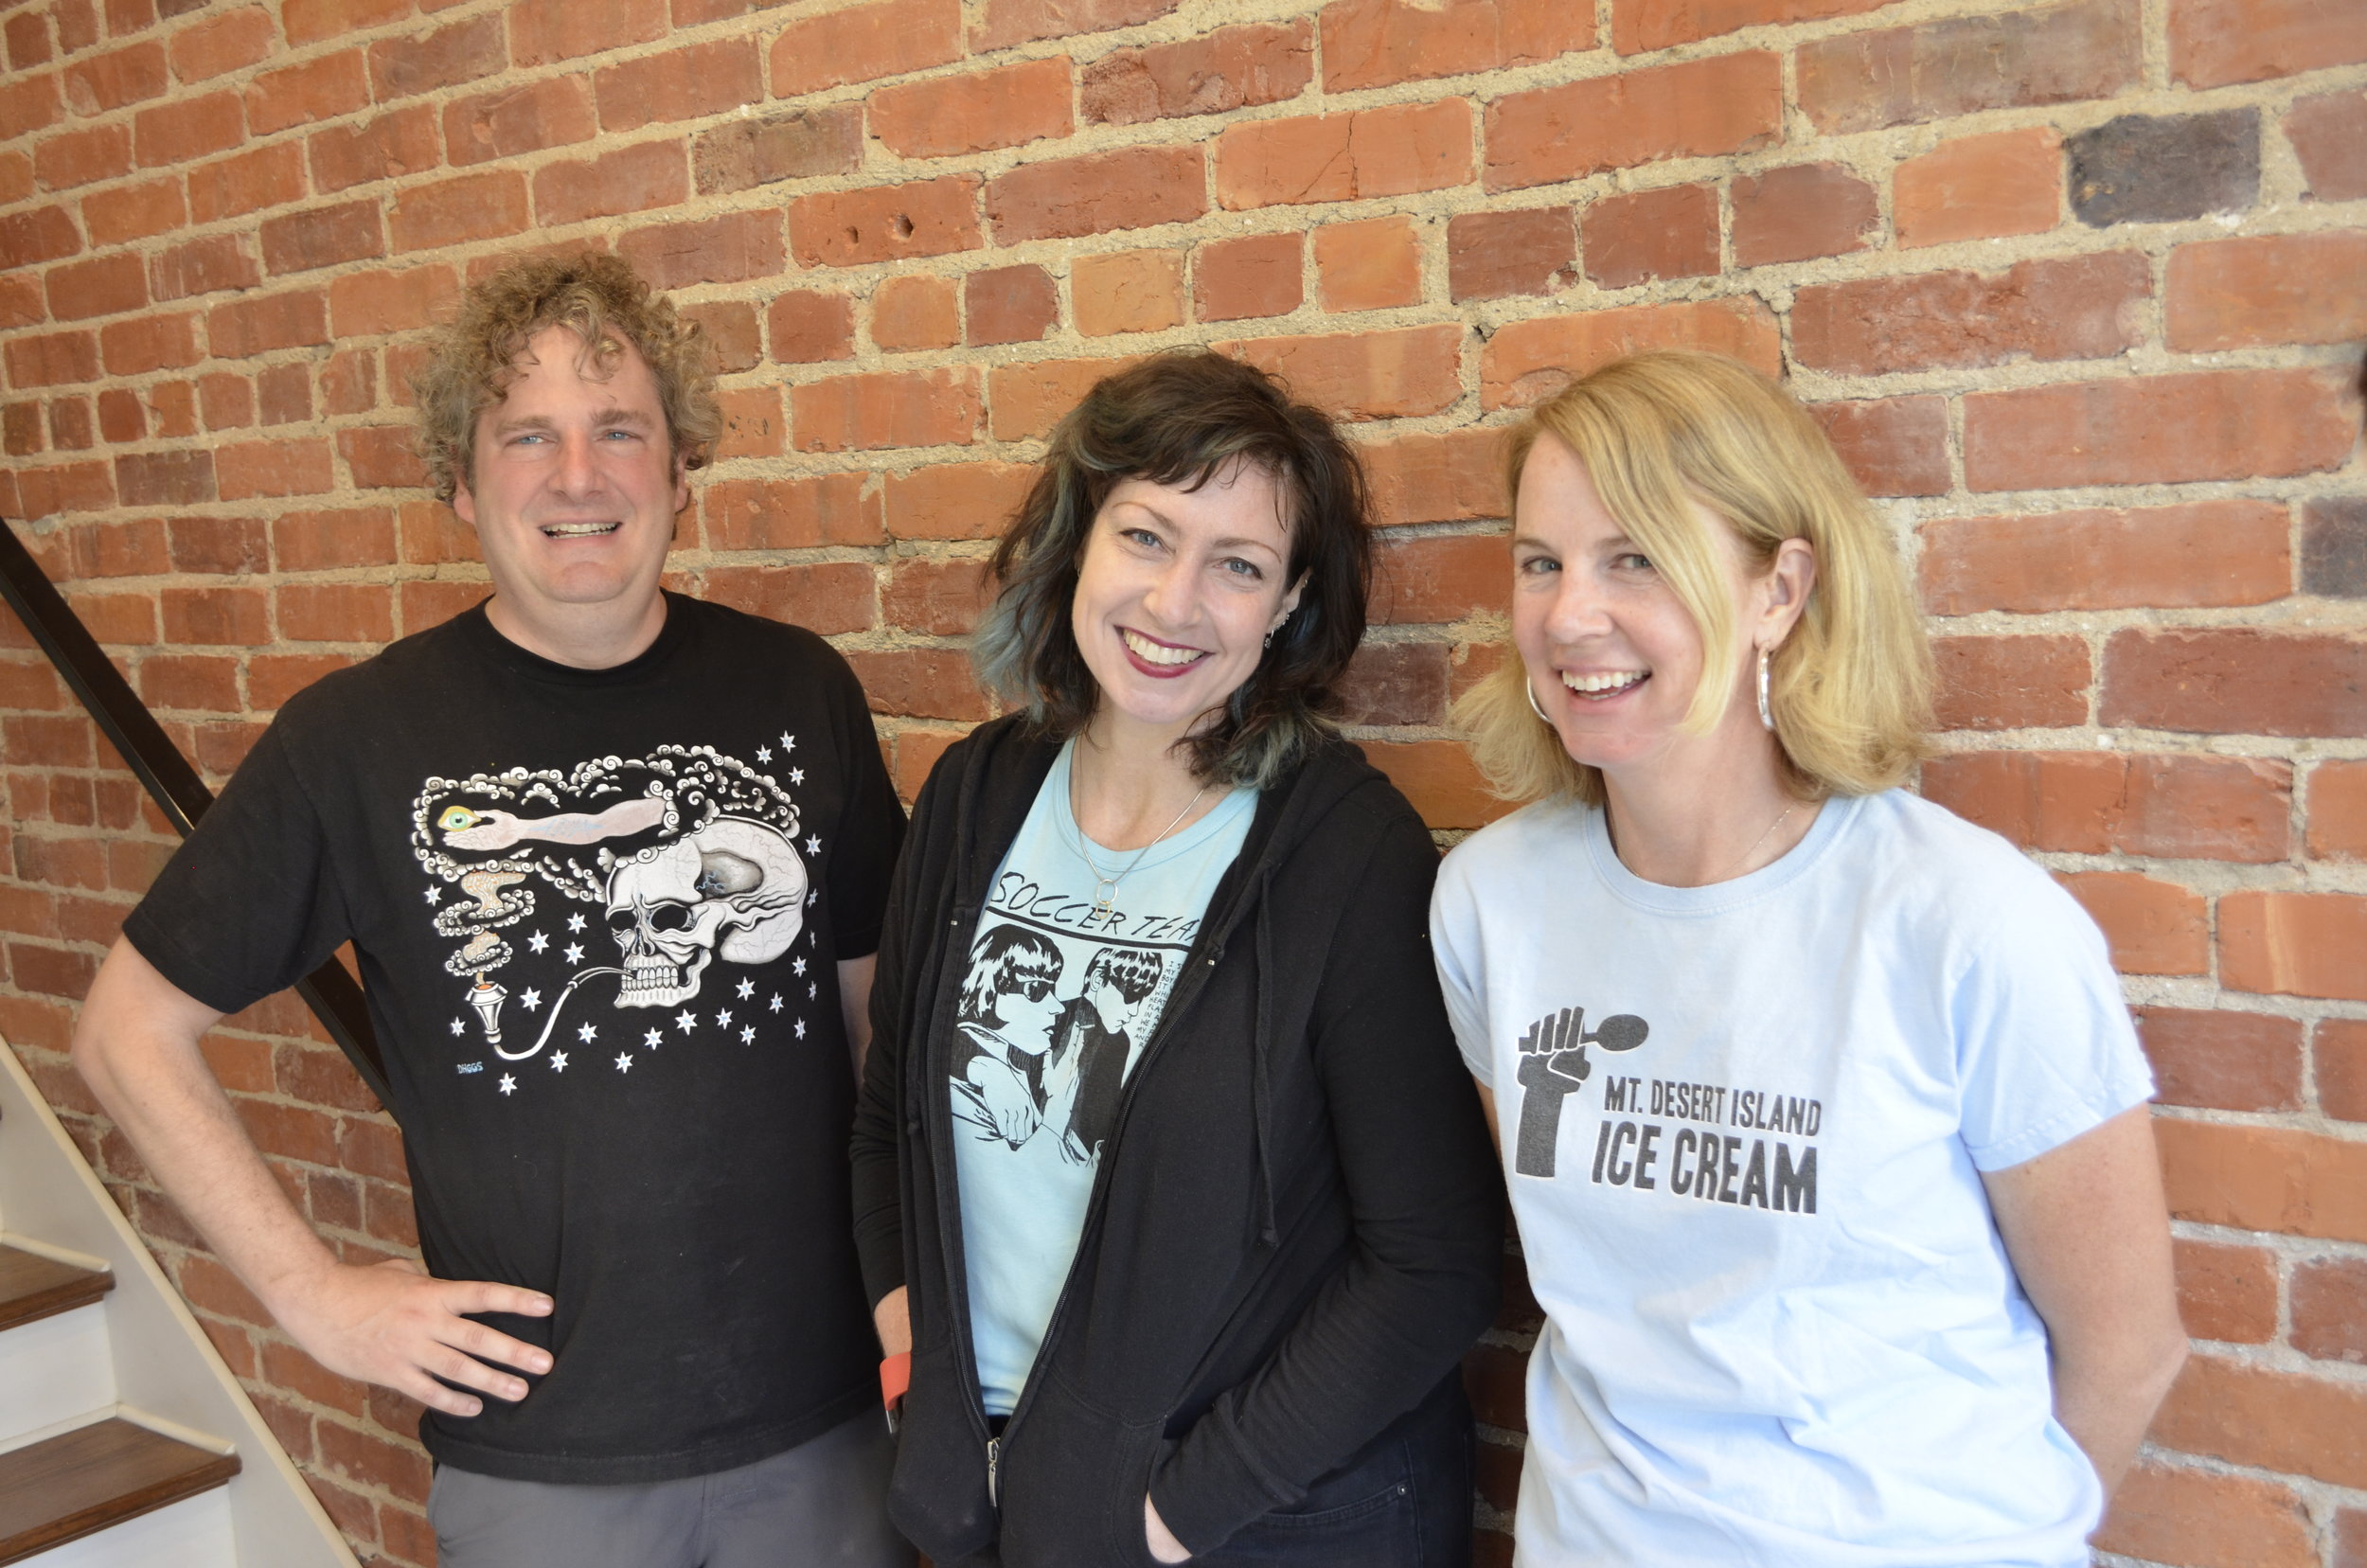 The mount desert ice cream team: Brian Lowit, Melissa Quinley, and Linda Parker